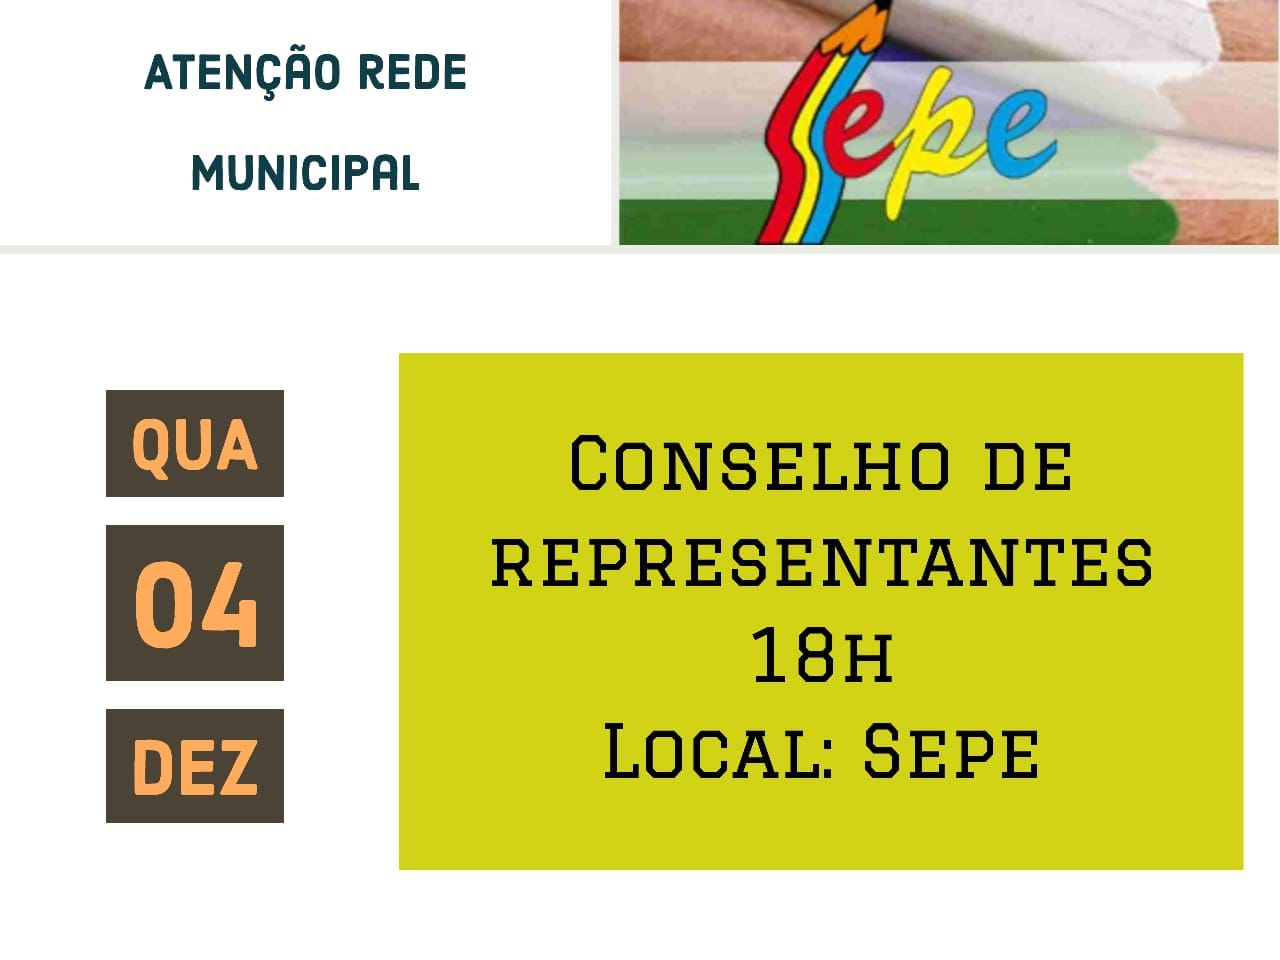 Rede Municipal – CR